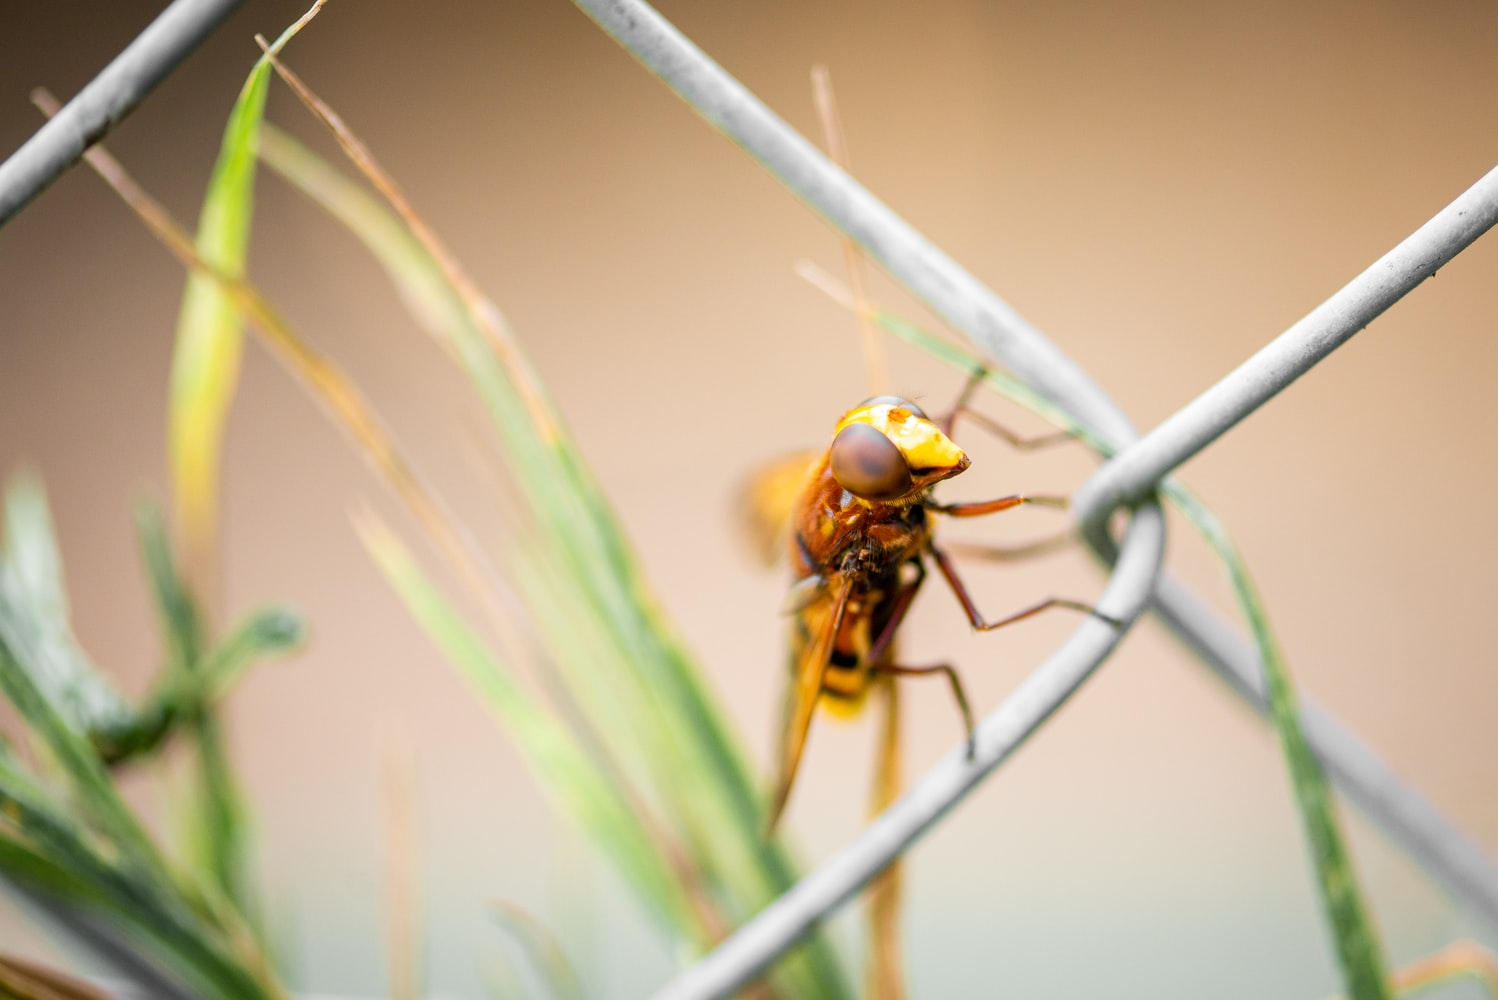 Wasp on a gate wire